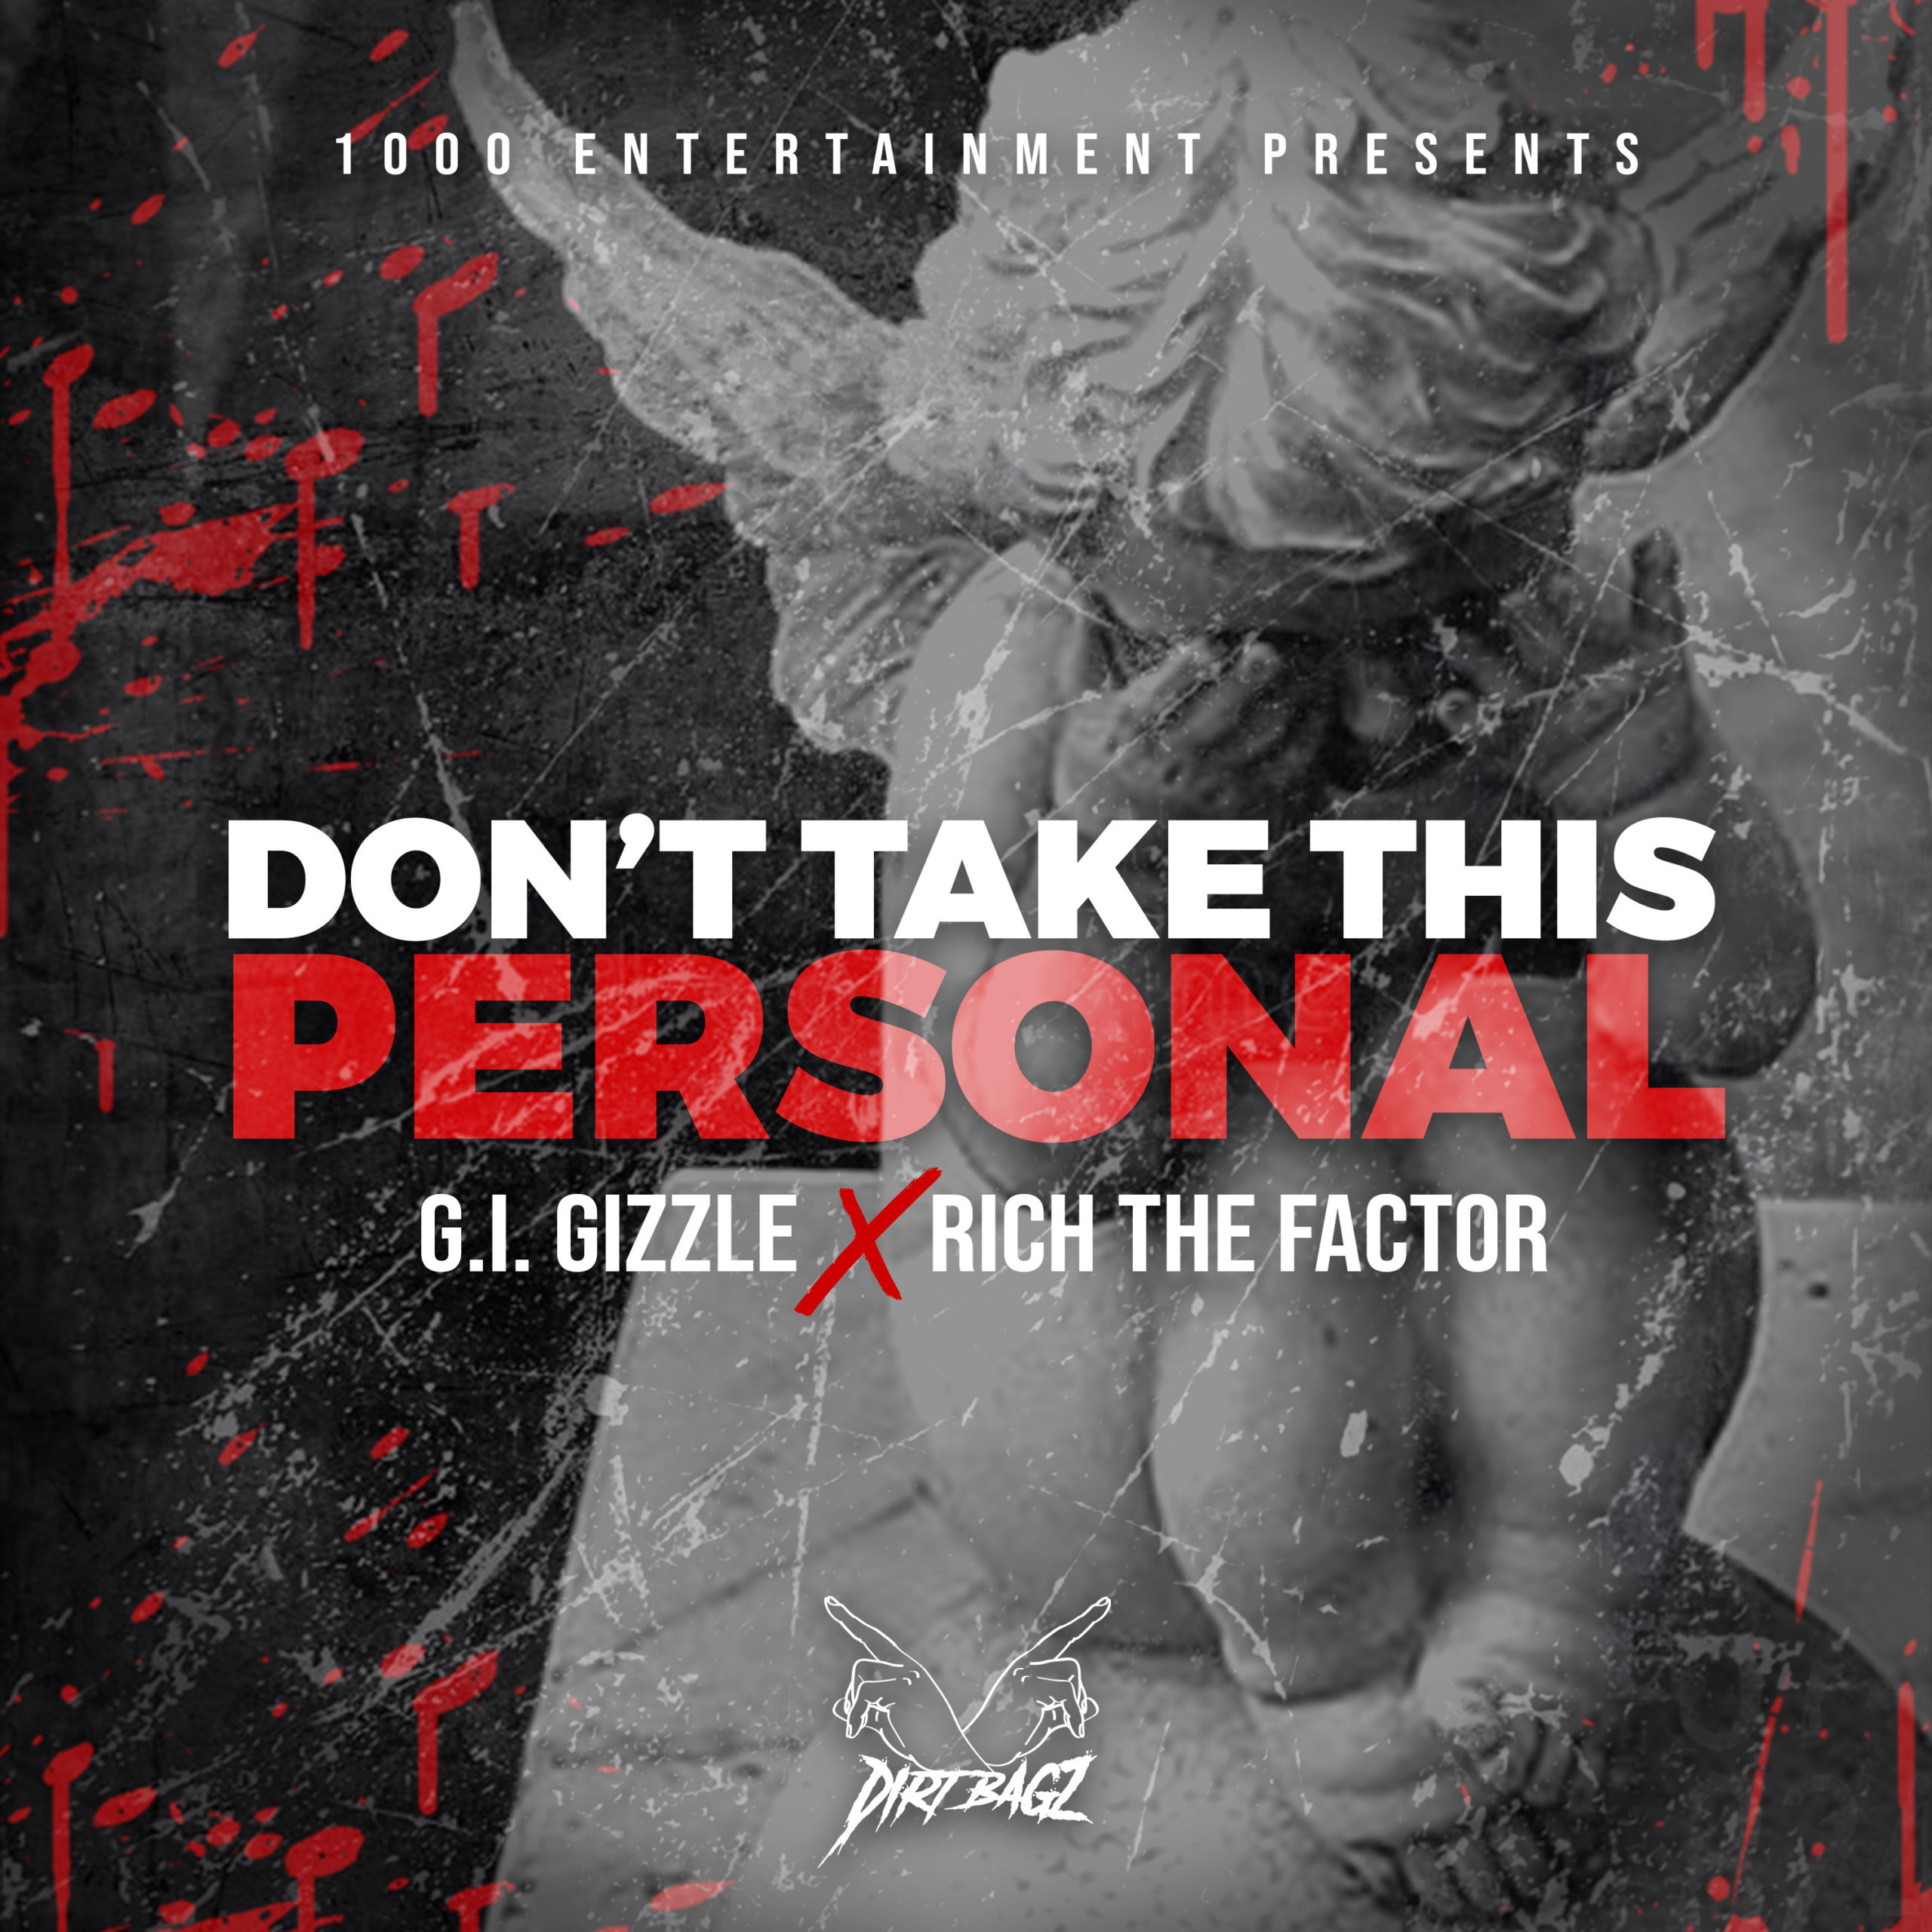 "G.i. Gizzle x Rich The Factor ""Don't Take This Personal"" 